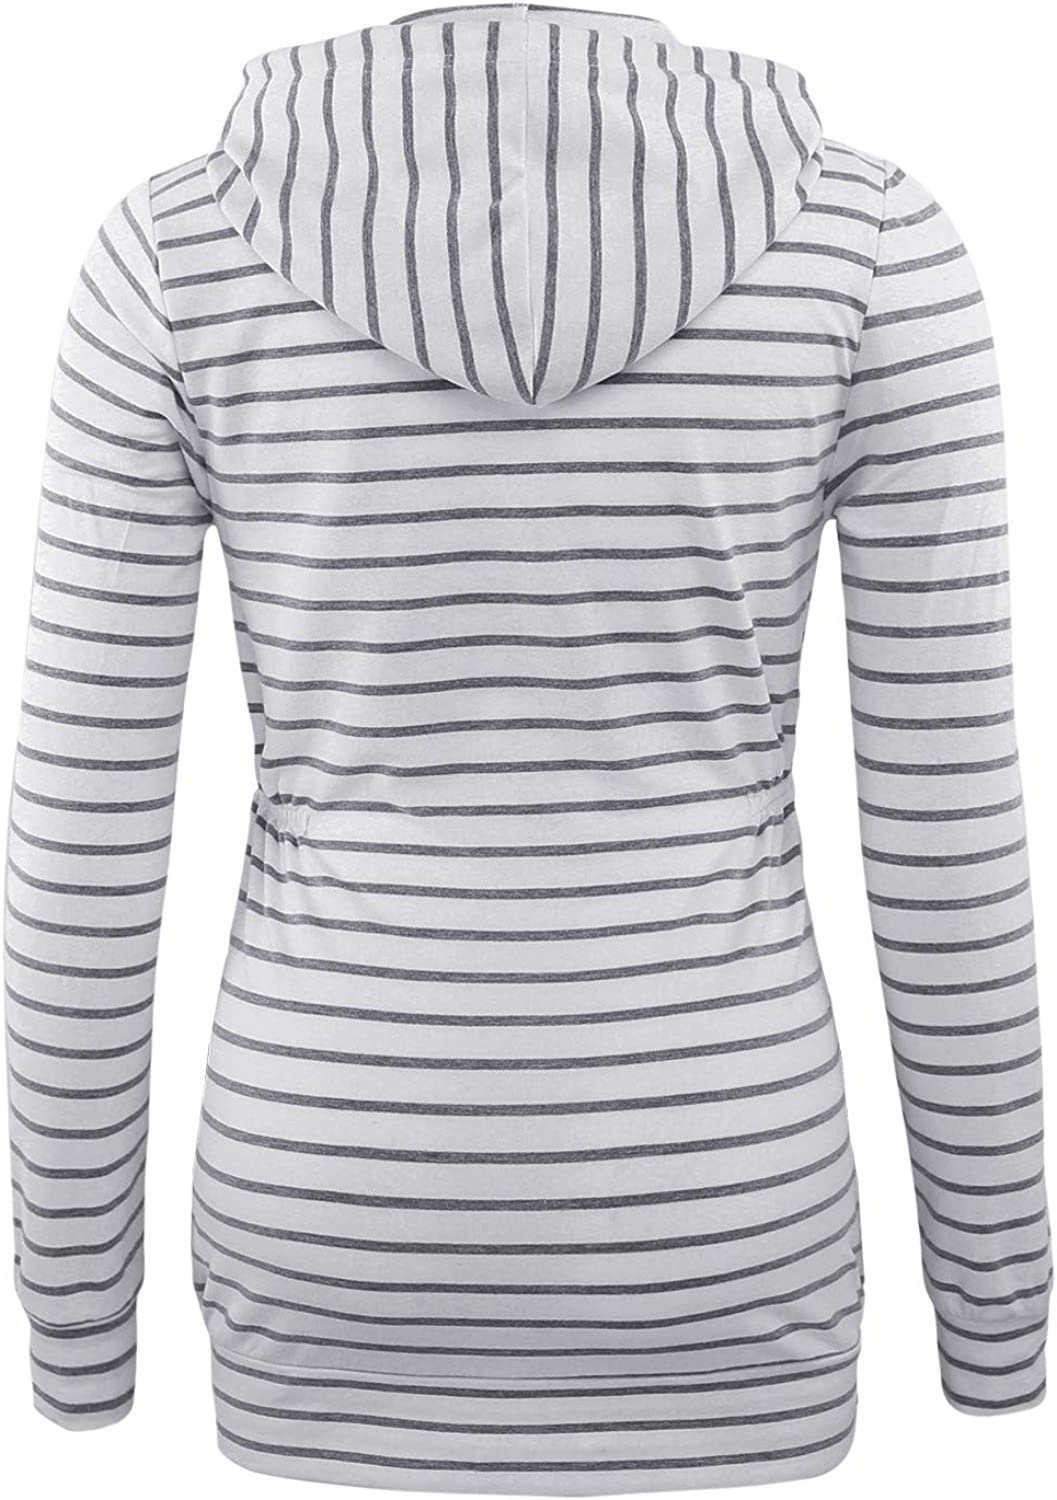 BBHoping Maternity Tops Hoodie Long Sleeve Open Front Clothes